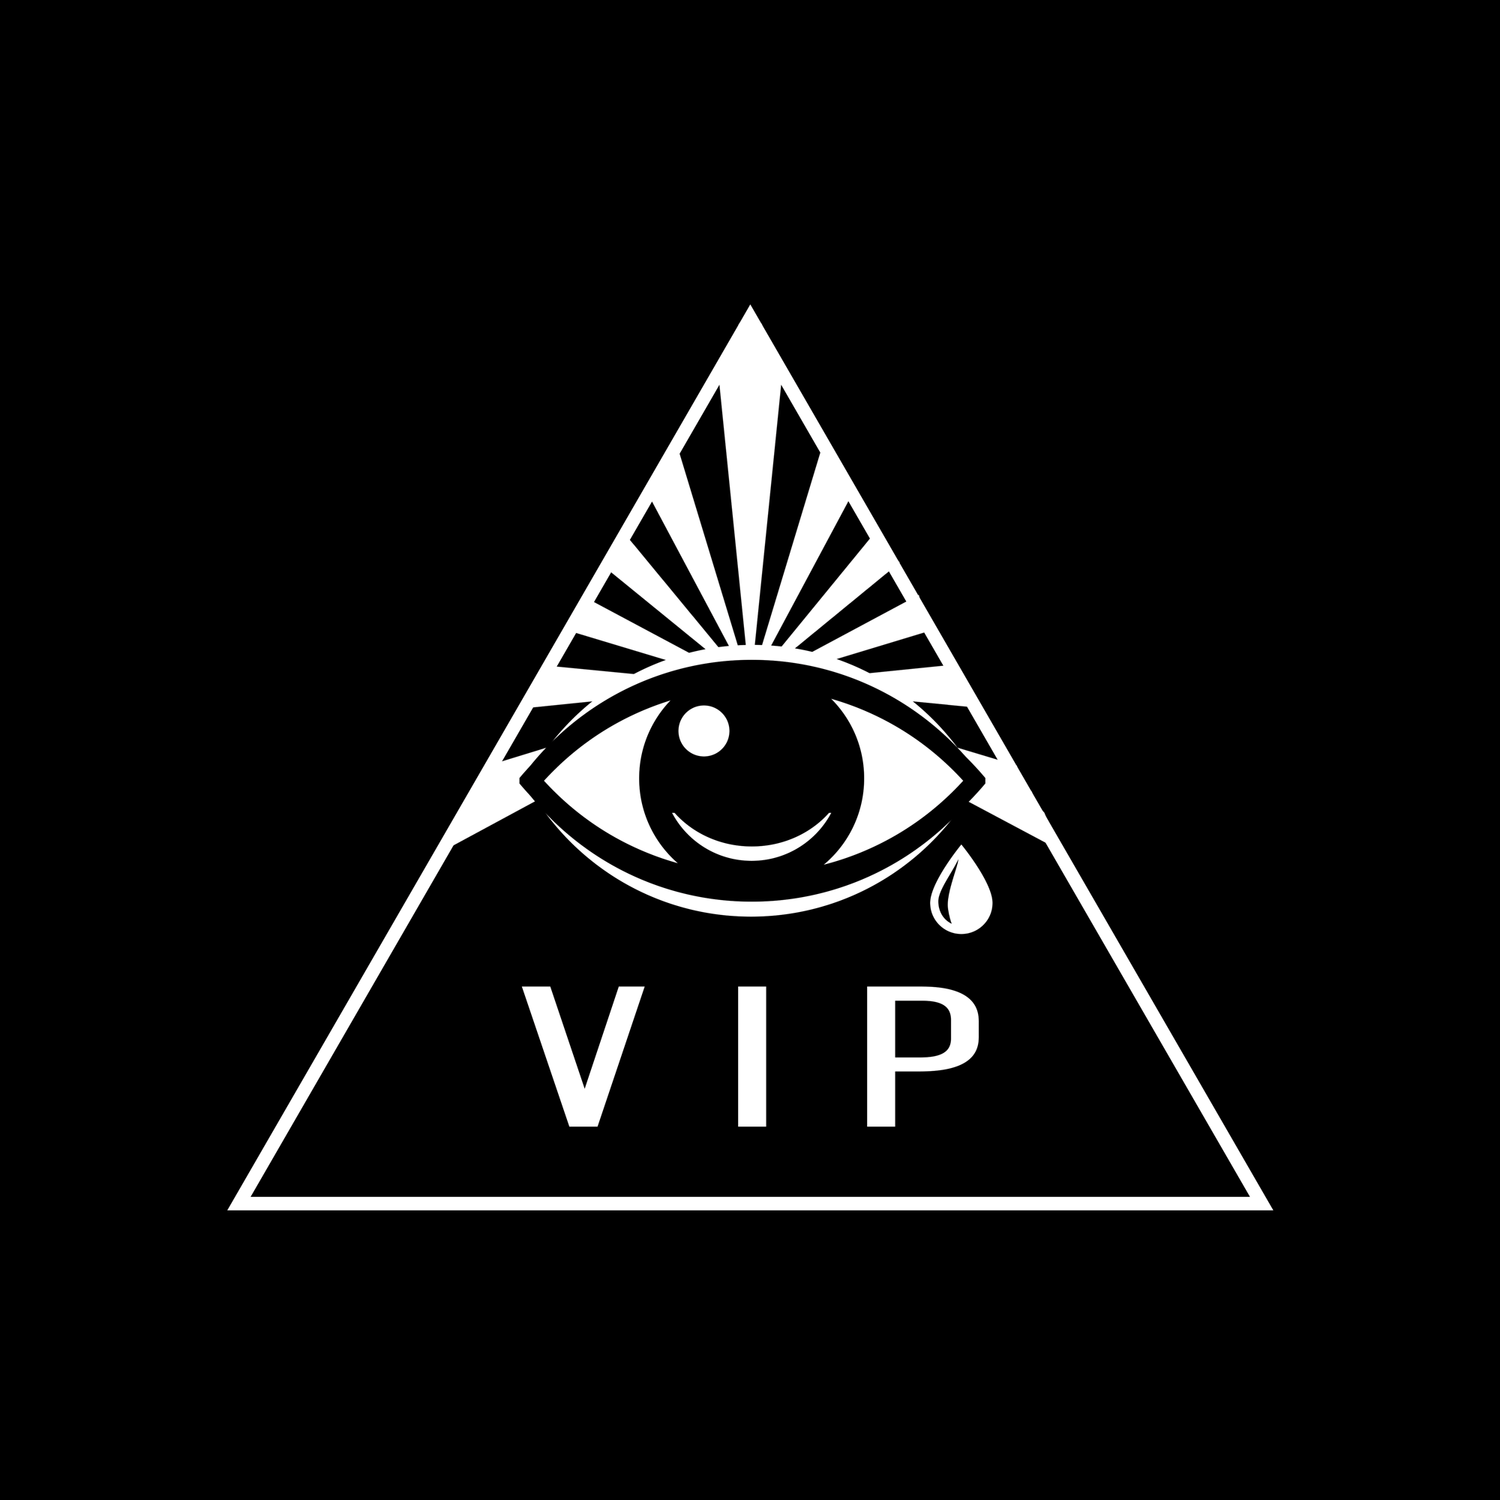 VIP Tattoo Studio | Maidstone Artists